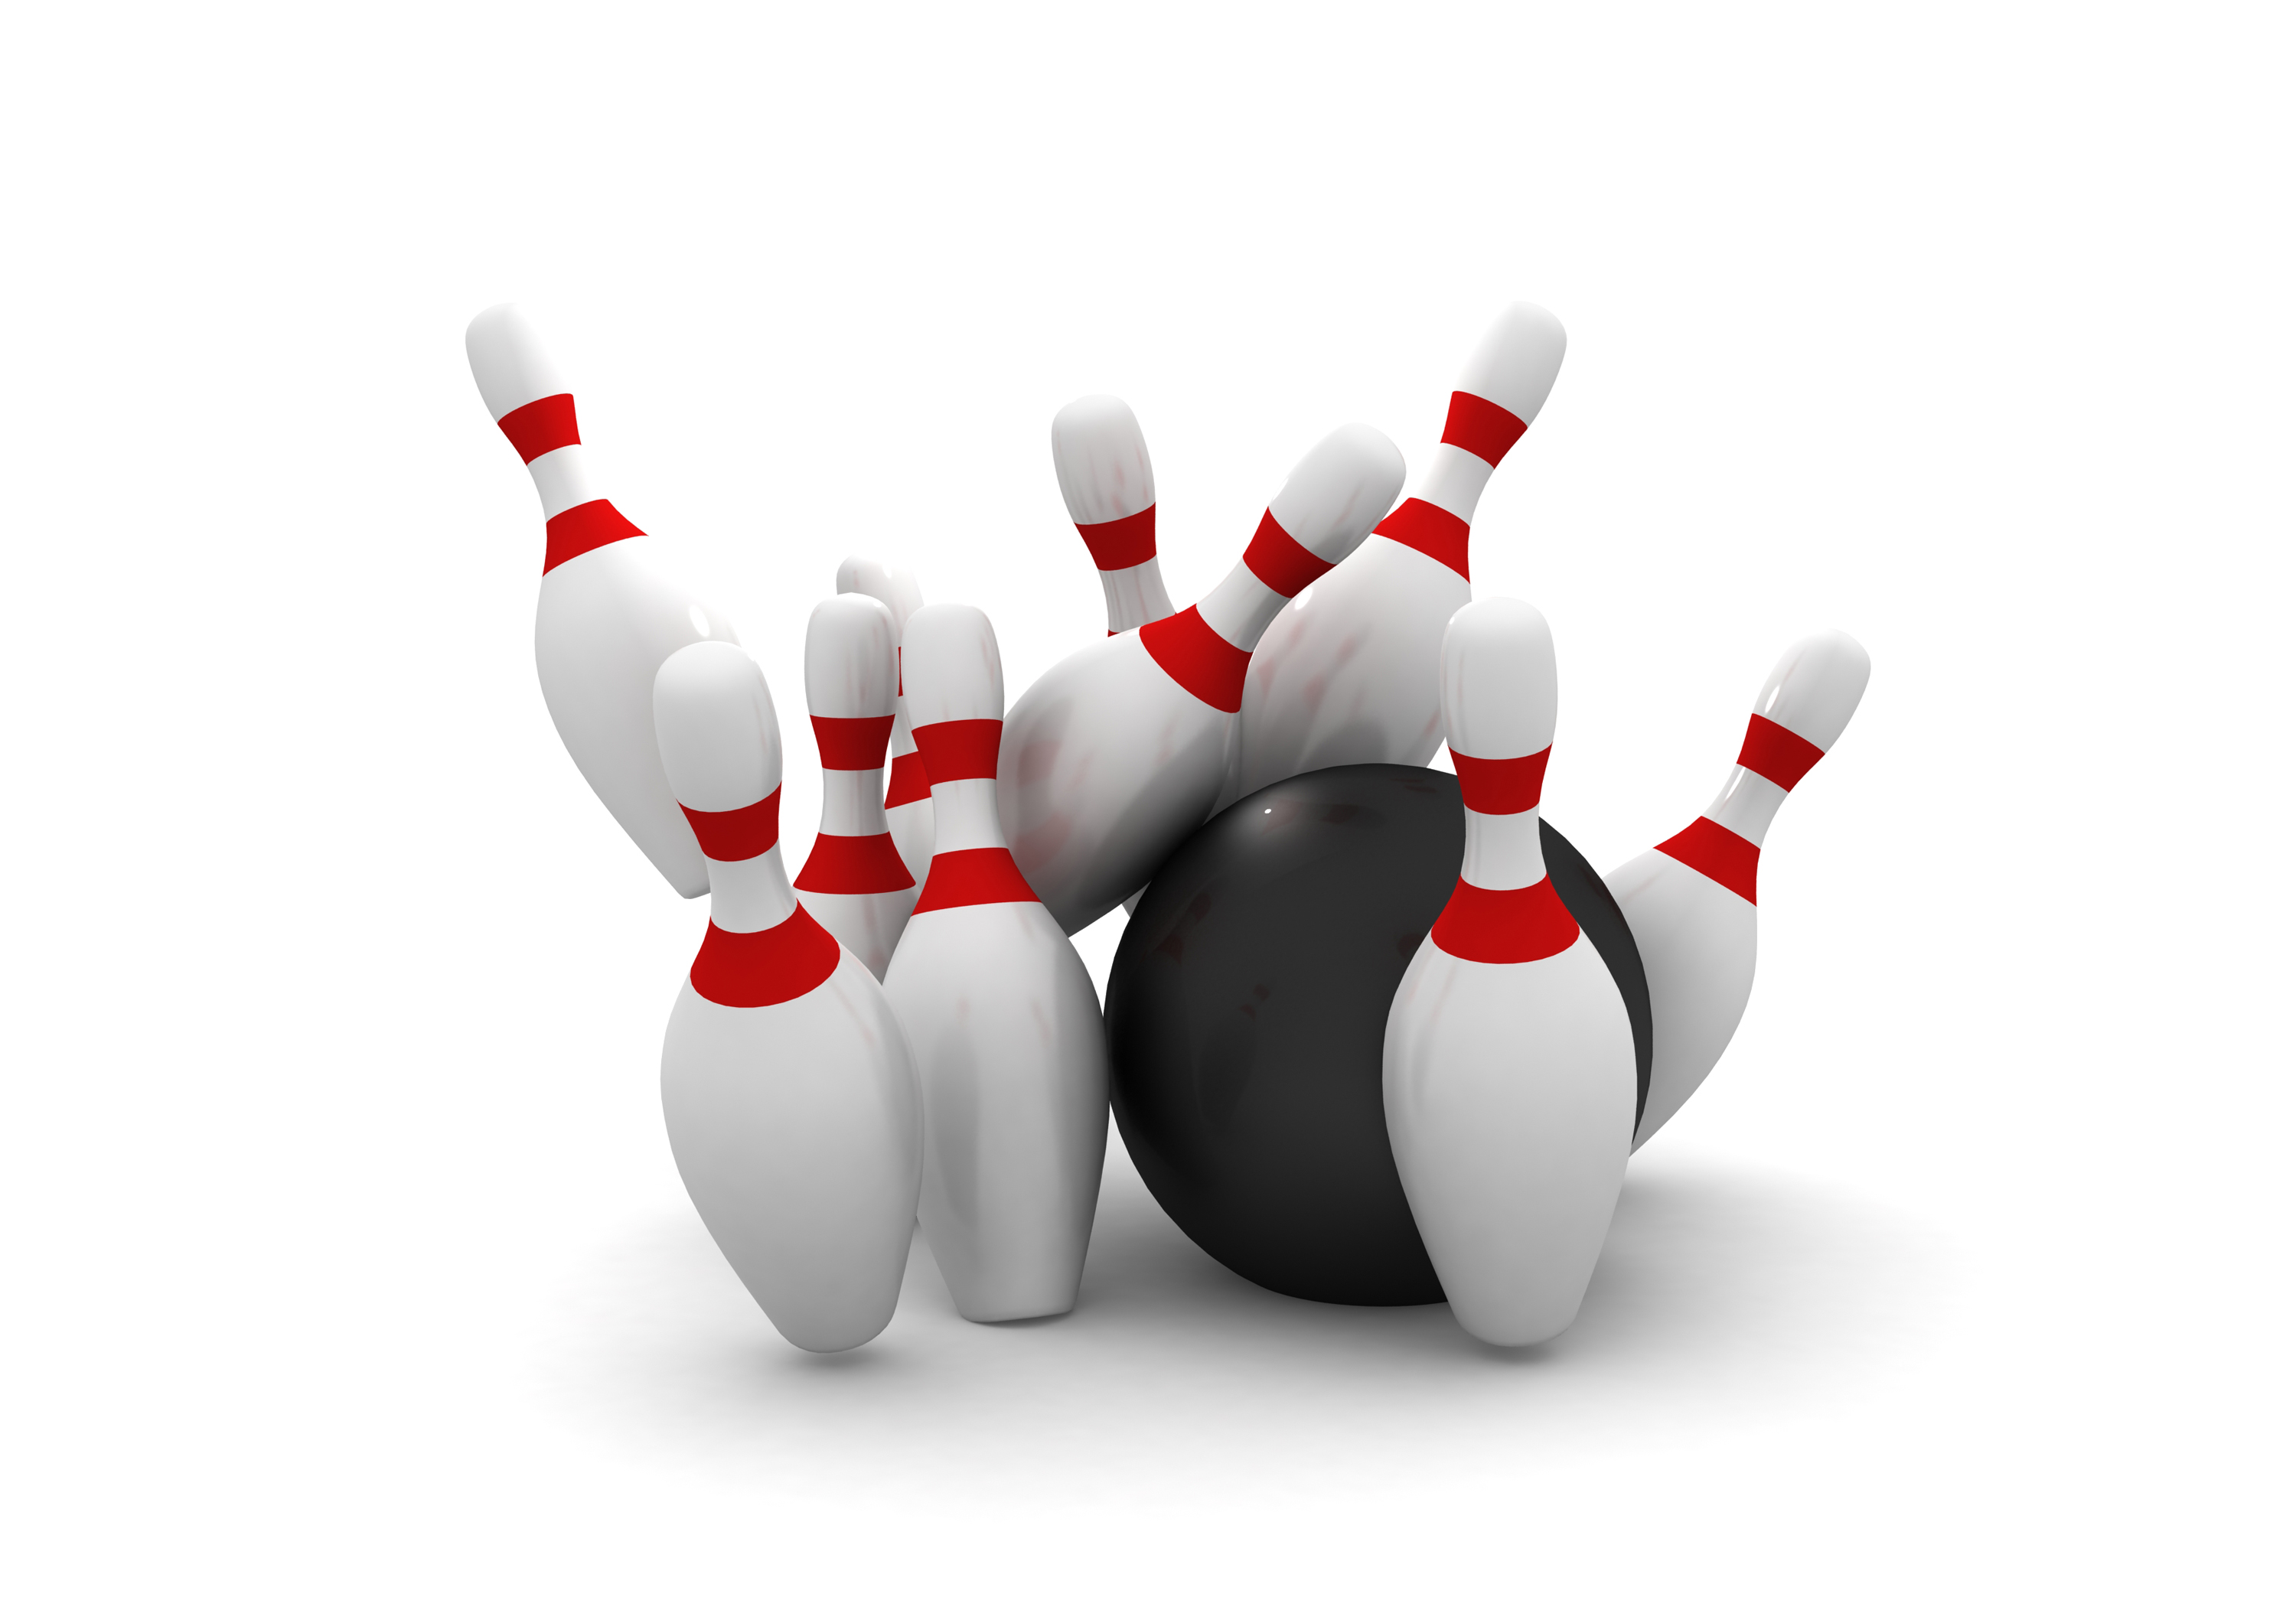 Bowling Ball Strike Royalty Free Stock Photos - Image: 22274838